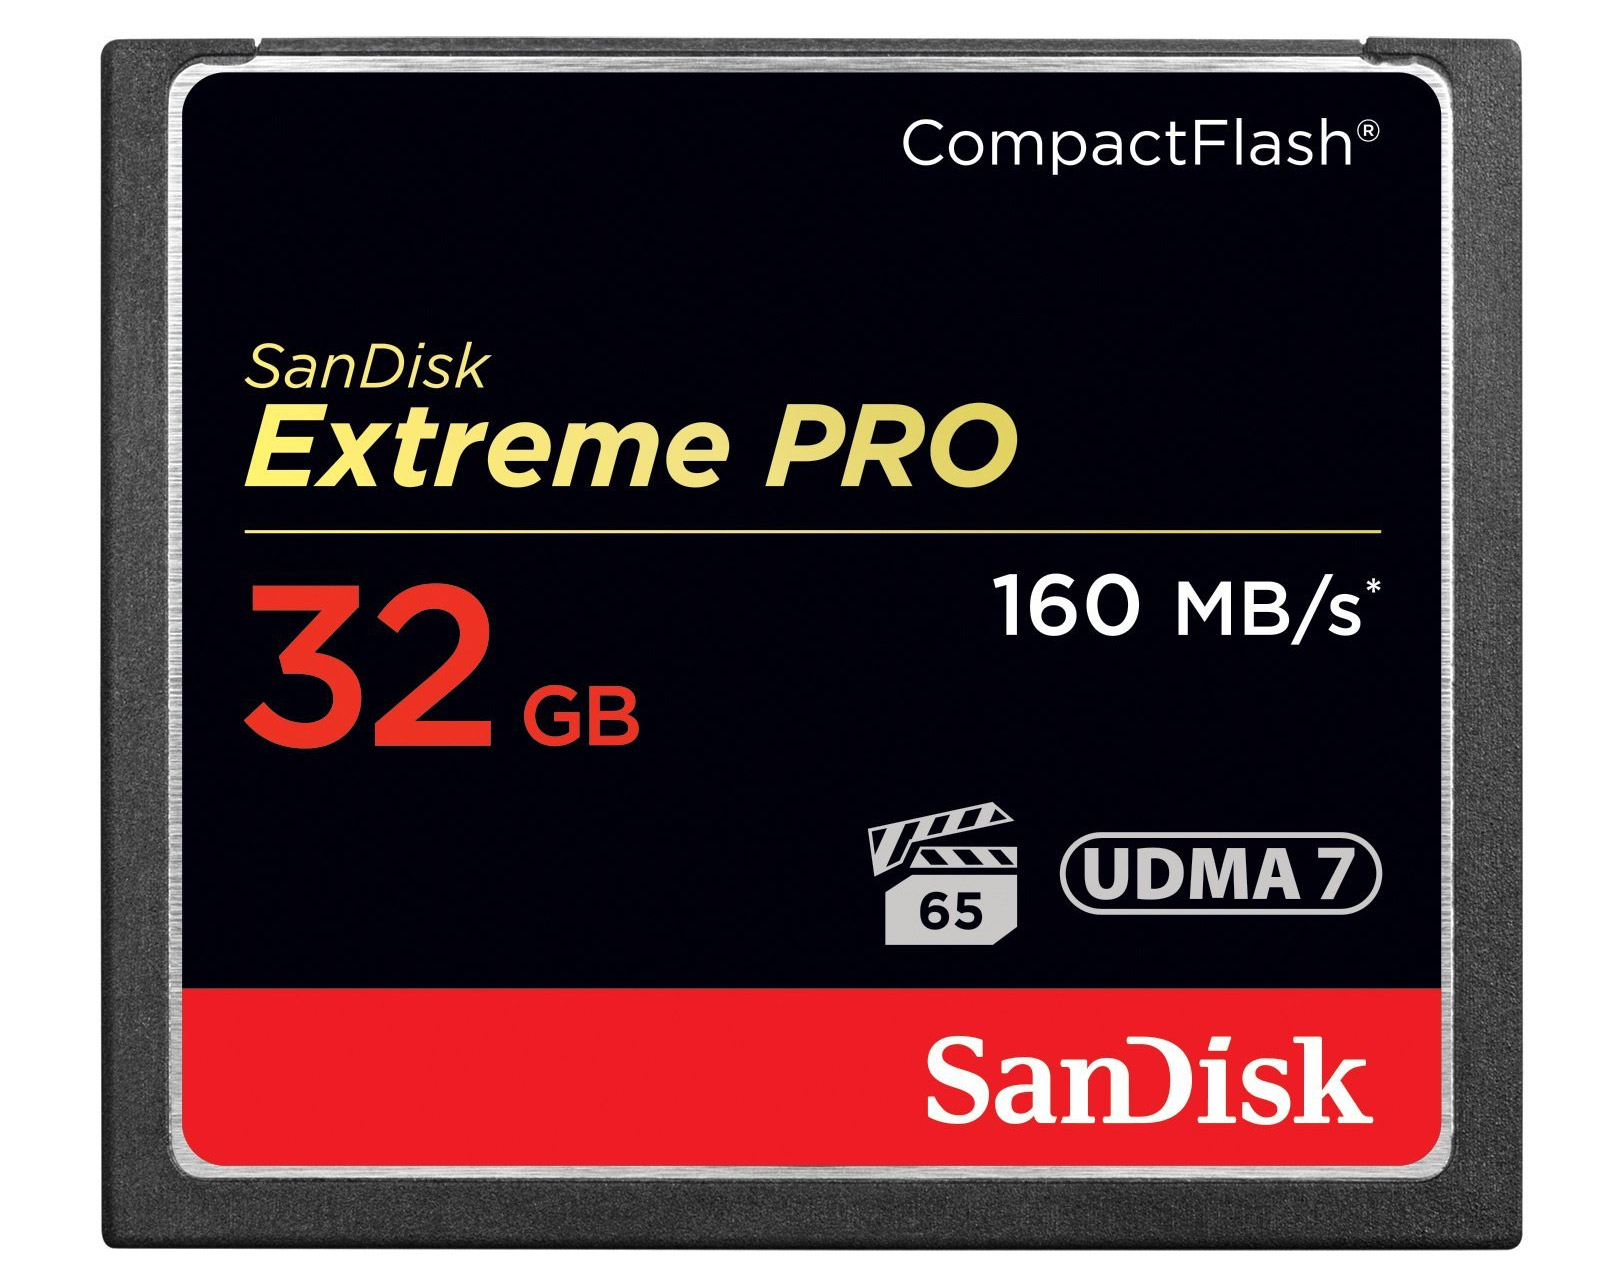 Sandisk Extreme Pro Cf 32 Gb 160 Mb S Specifications And 32gb